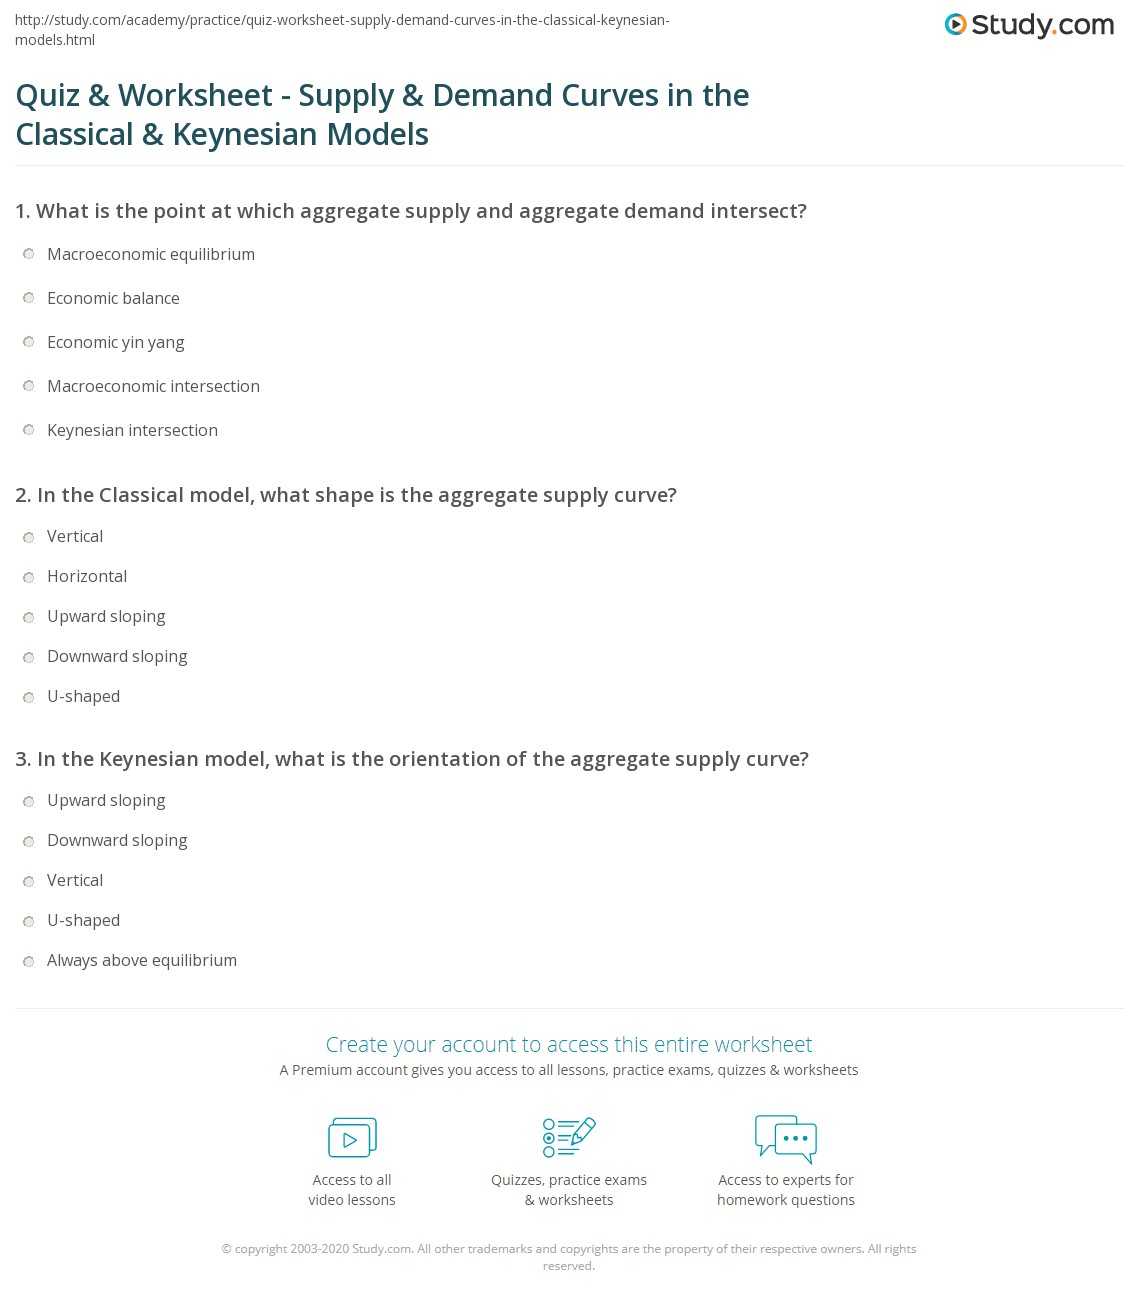 Worksheets Supply And Demand Worksheet quiz worksheet supply demand curves in the classical print and model keynesian worksheet